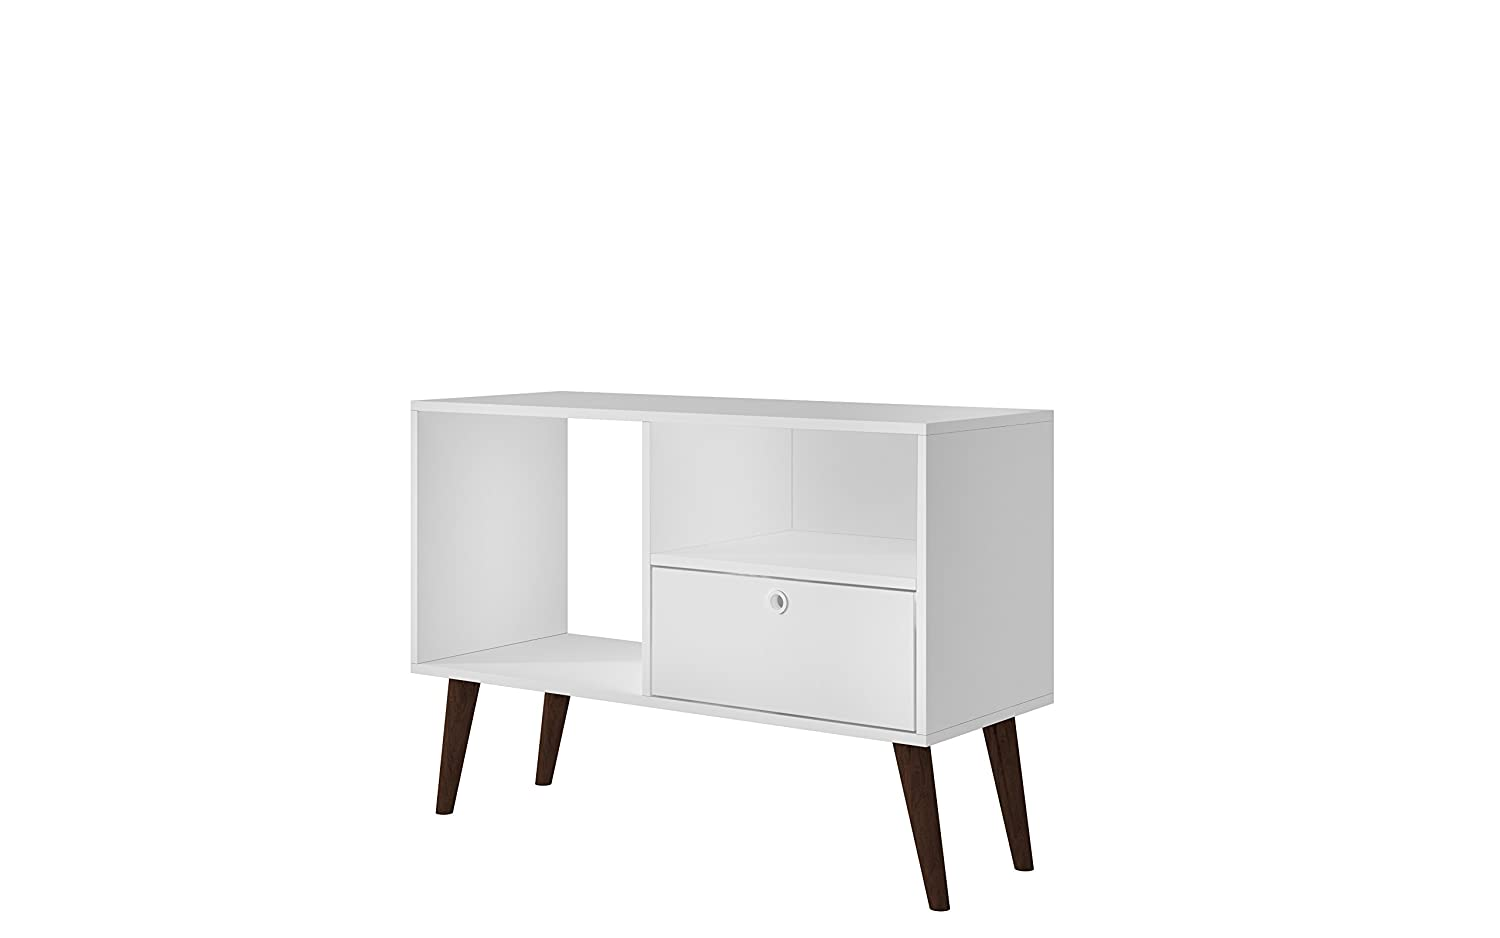 White Manhattan Comfort Bromma Collection Mid Century Modern TV Stand with Open Cubby Space and One Drawer with Splayed Legs, White